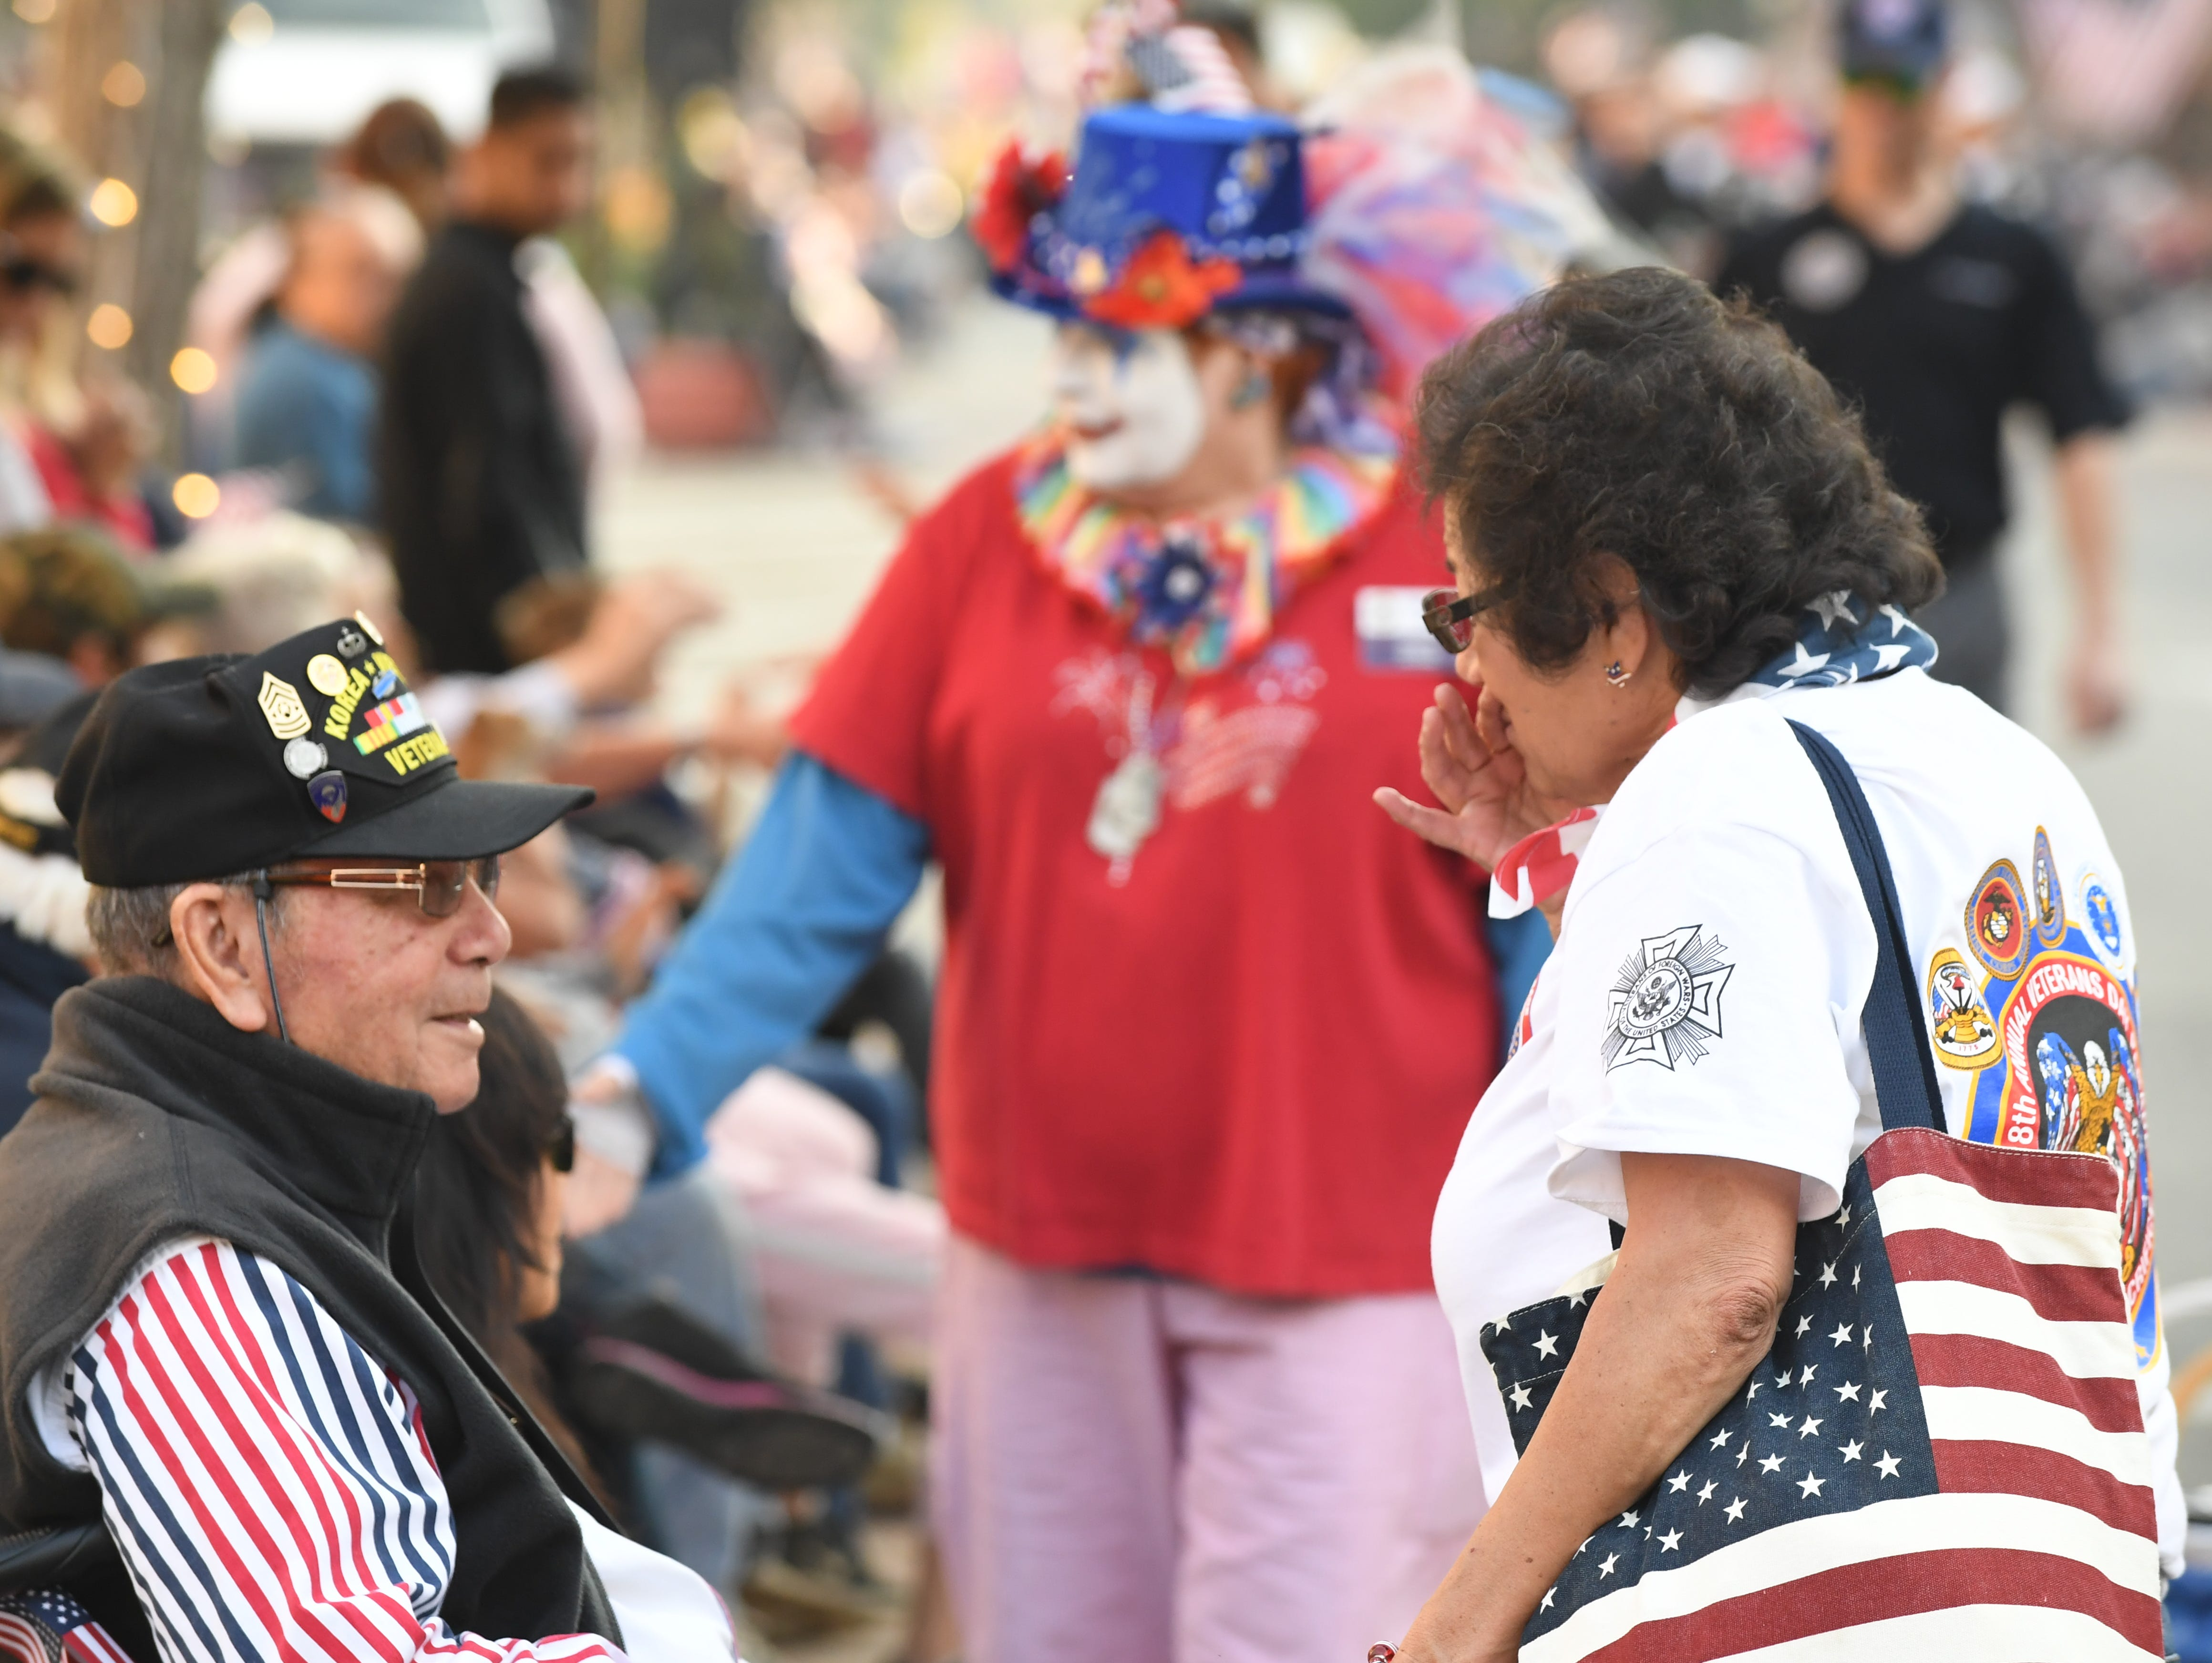 The eighth annual Monterey County Veterans Day Parade went down South Main Street on Sunday as thousands celebrated the national holiday.